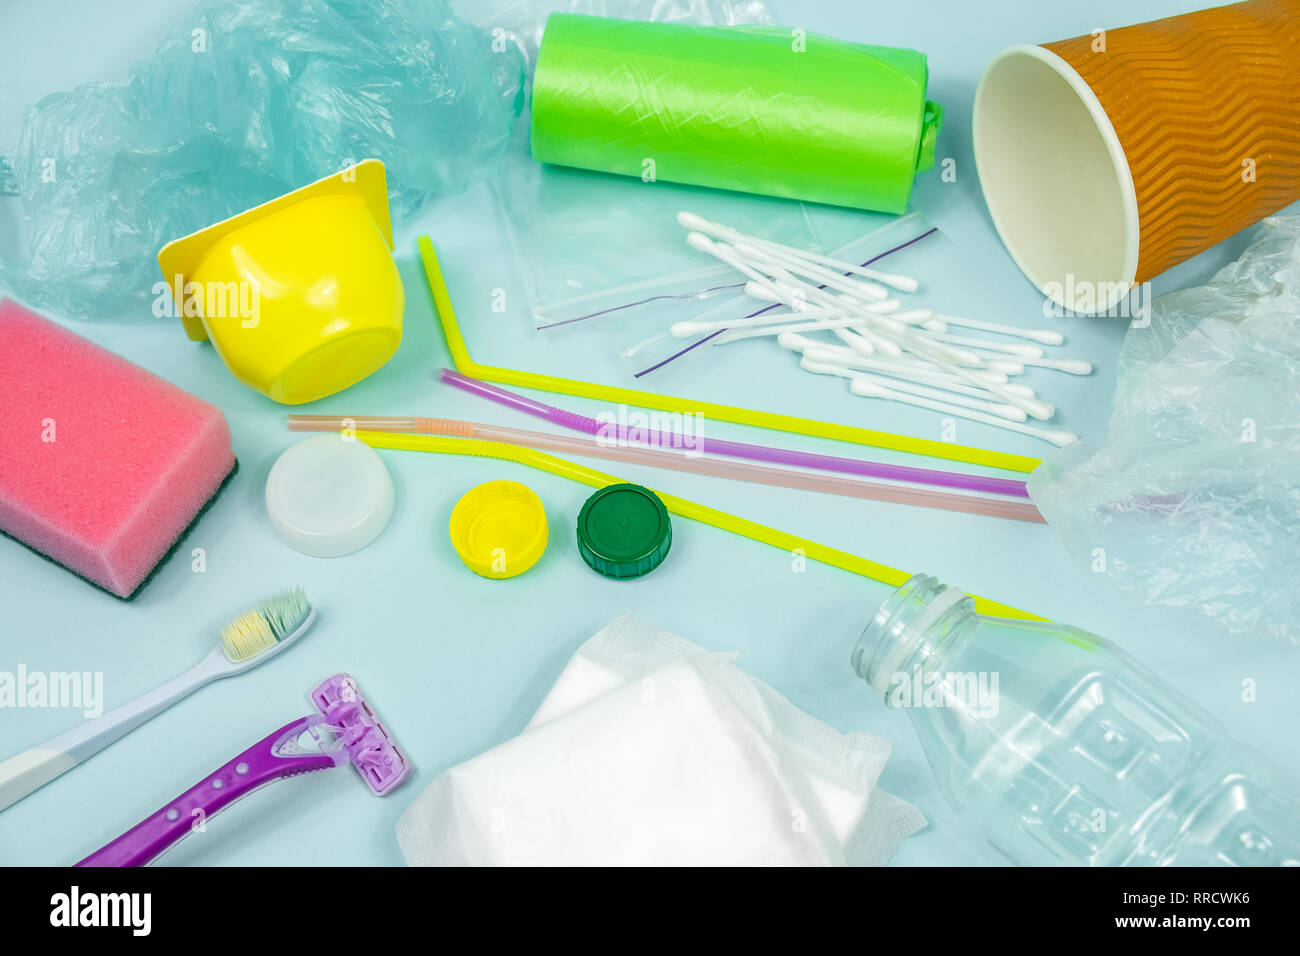 Plastic waste concept: varitety of single use objects that get thrown out every day. Plastic bottle, hygiene items and plastic package depicting ecolo - Stock Image